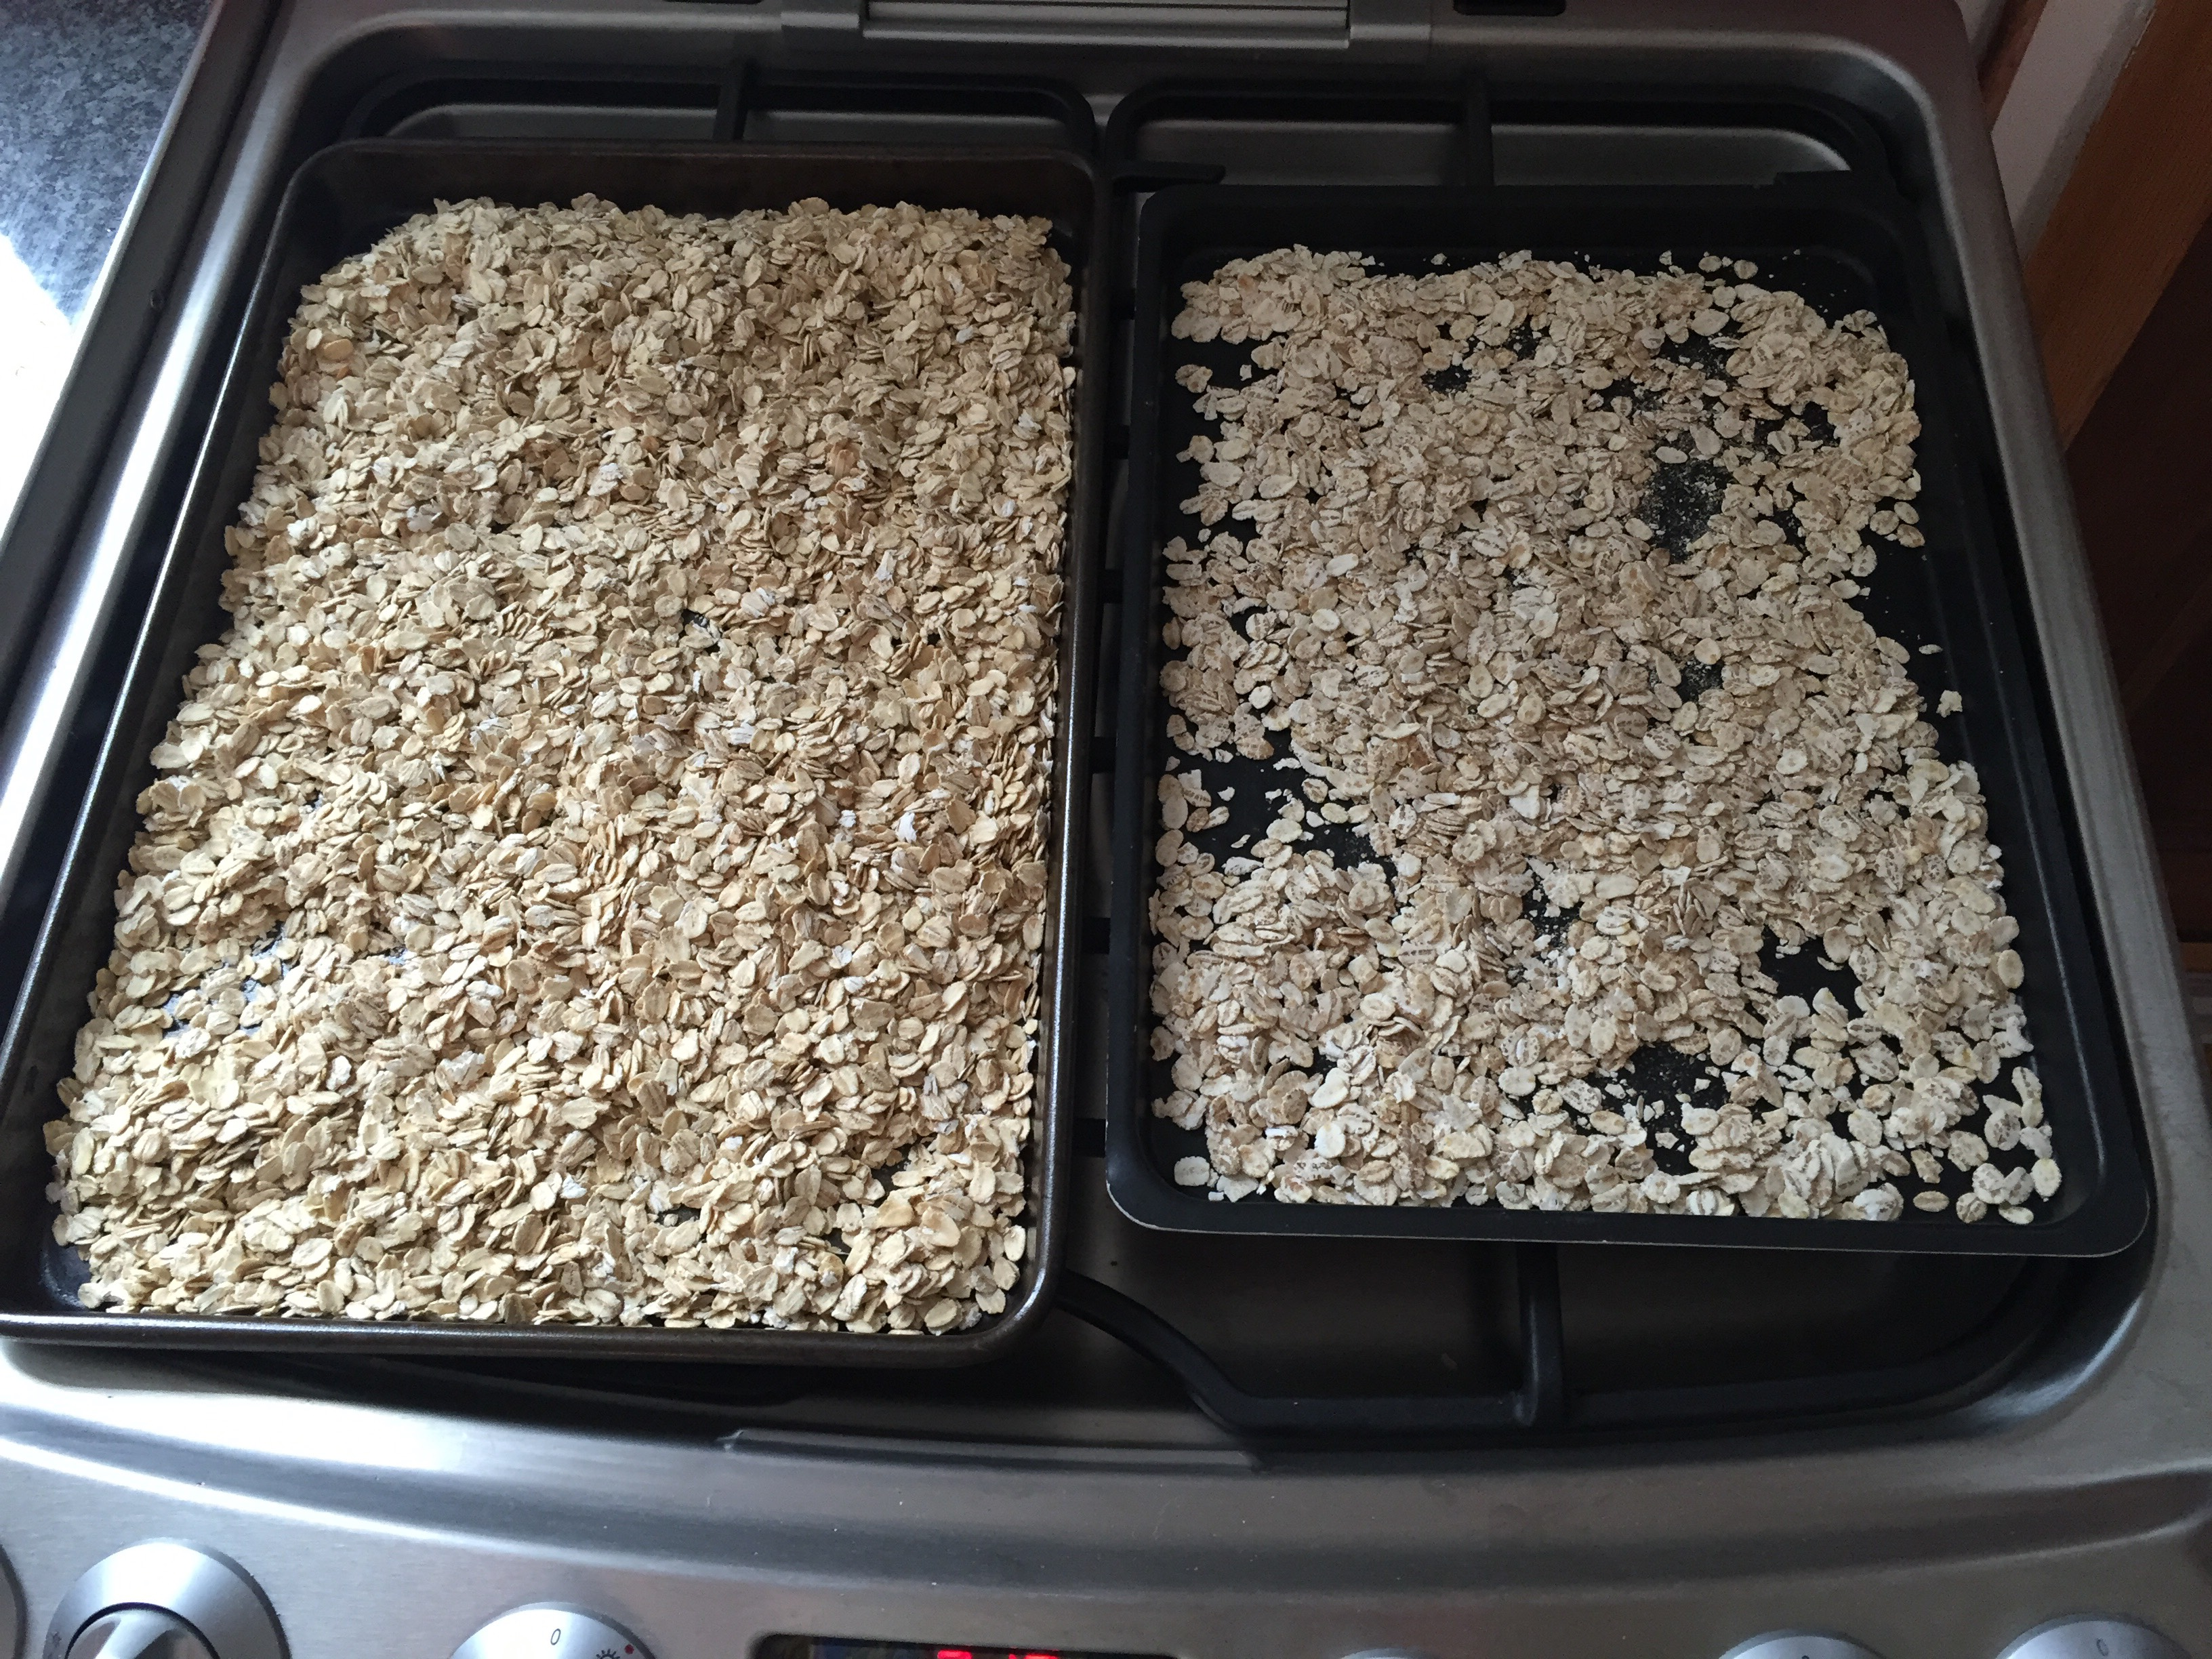 Picture of Toasting the Muesli